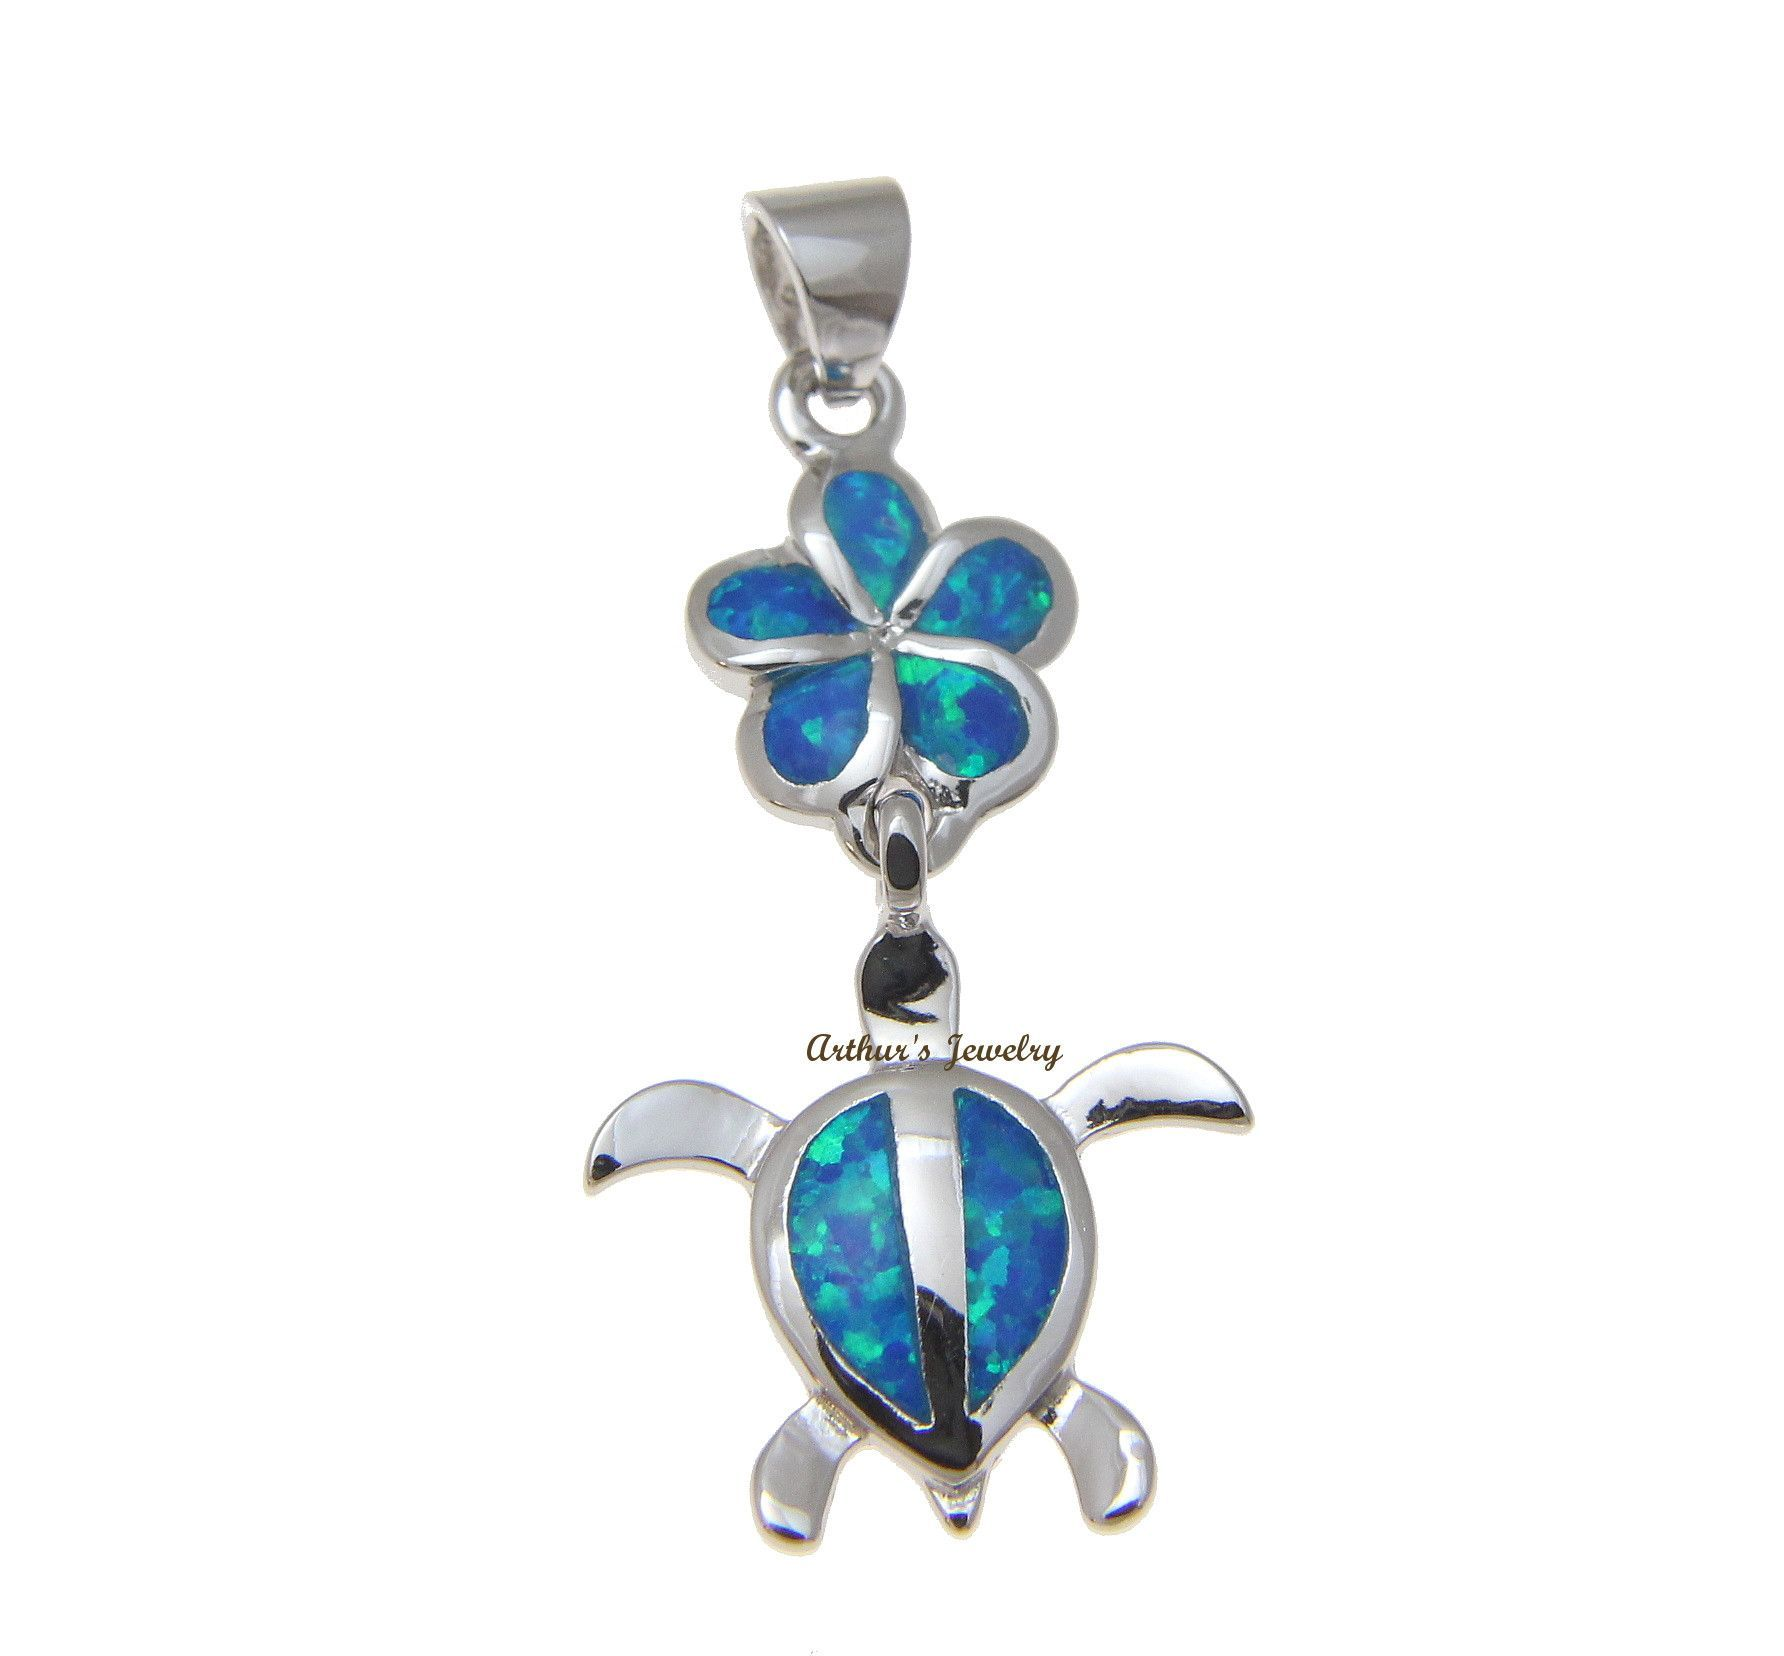 Inlay opal hawaiian plumeria honu sea turtle pendant 925 sterling inlay opal hawaiian plumeria honu sea turtle pendant 925 sterling silver 15mm aloadofball Gallery